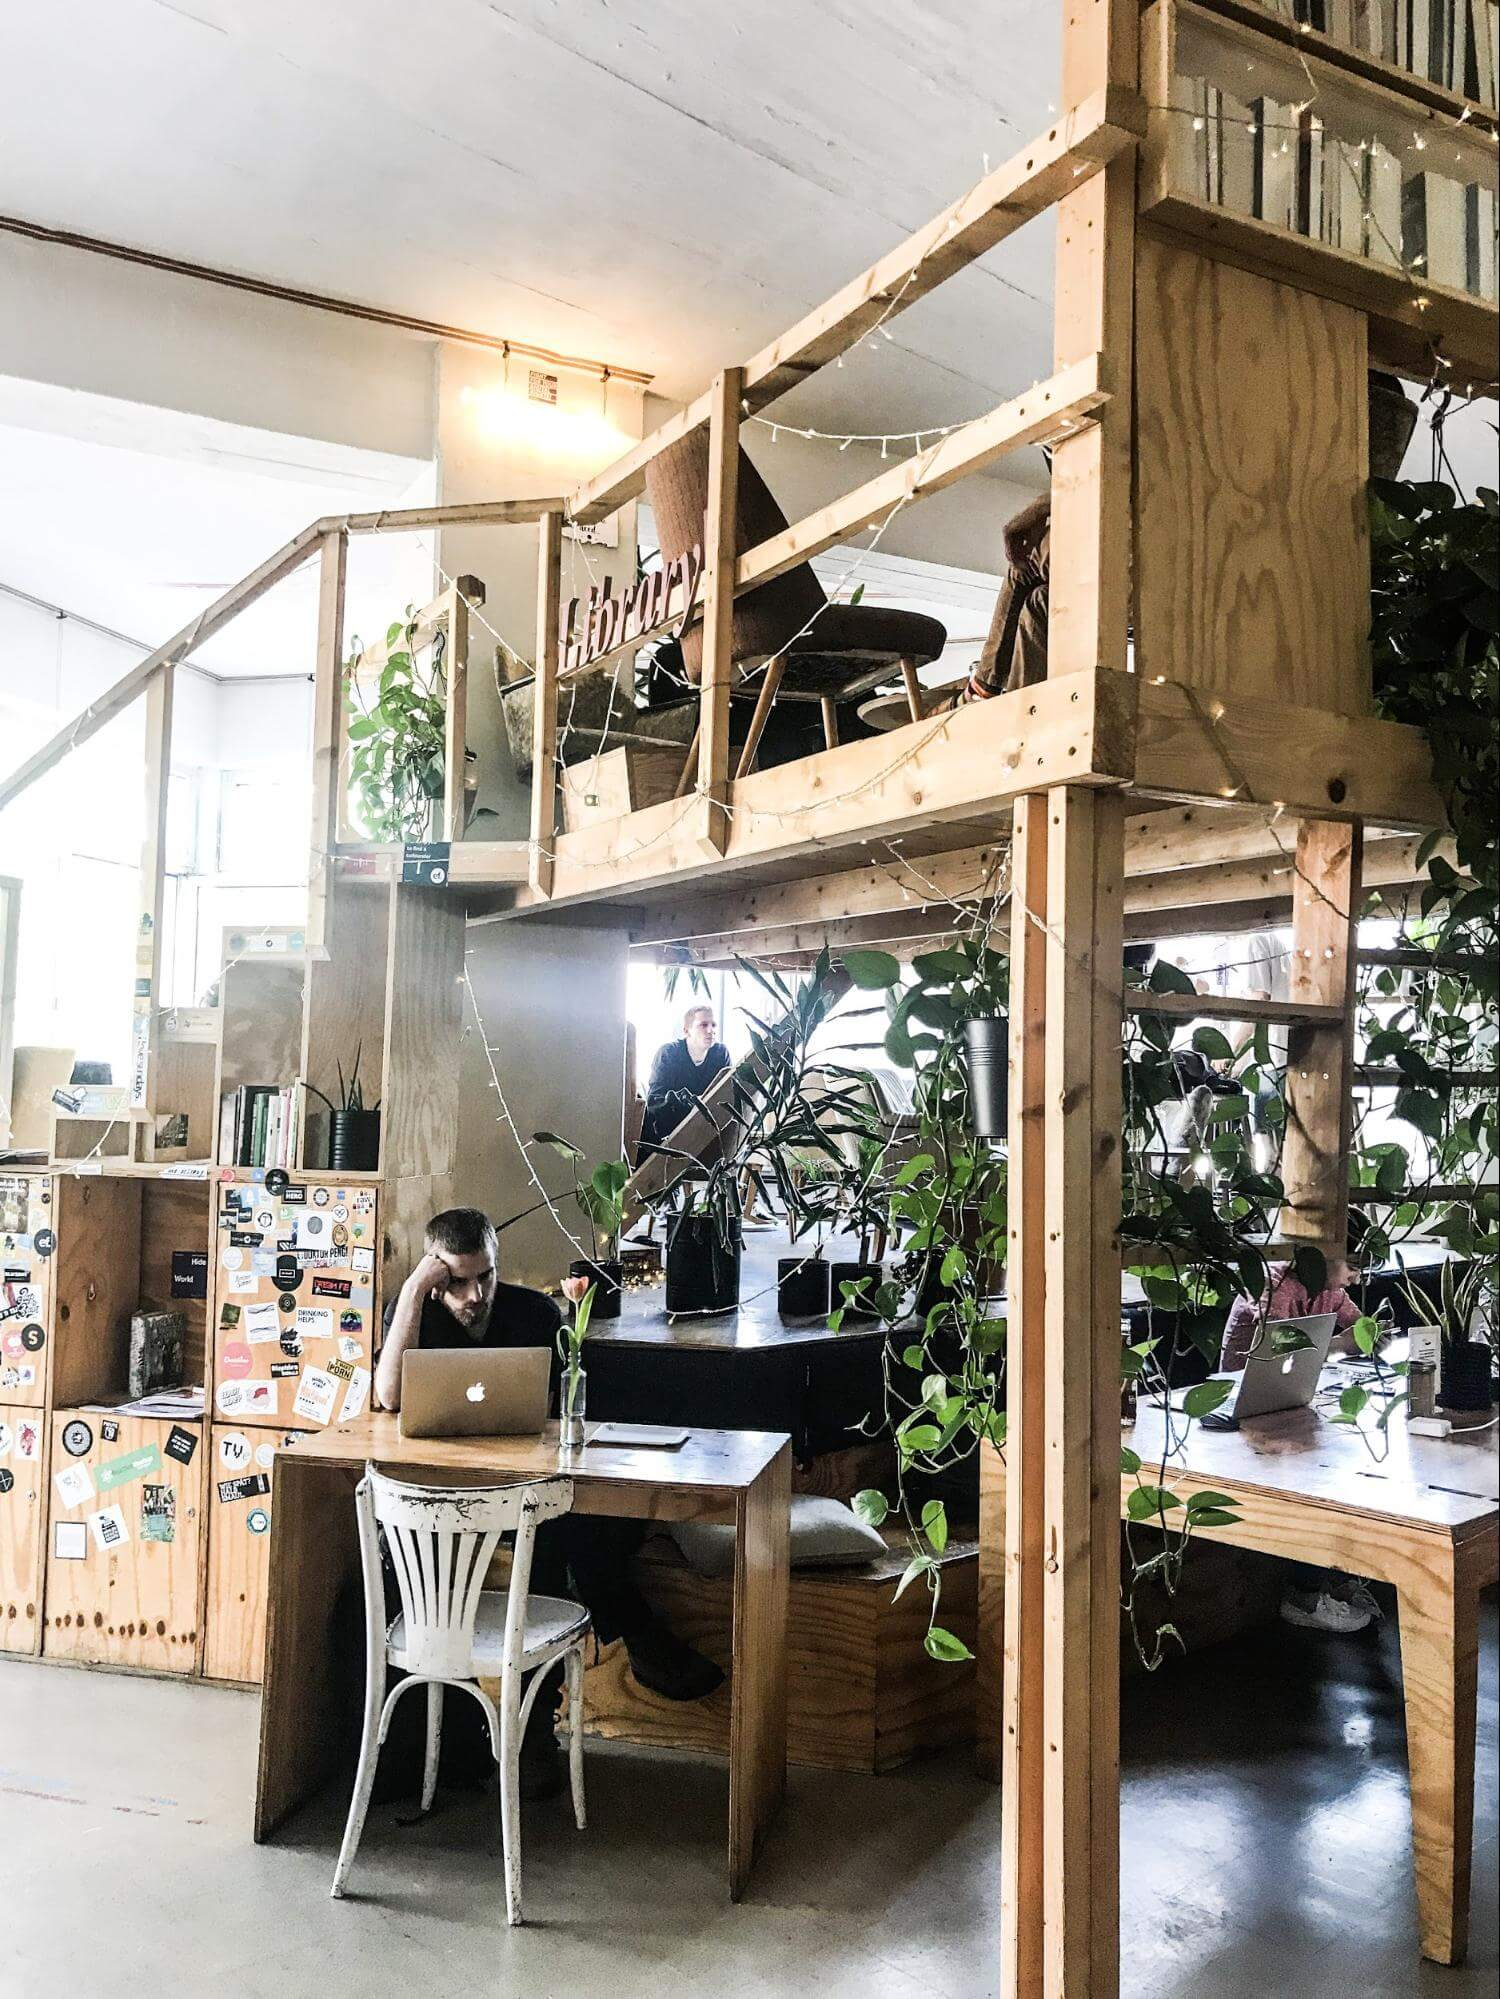 Enough levels and crooks and nannies to find your perfect spot at the Betahaus, Berlin.